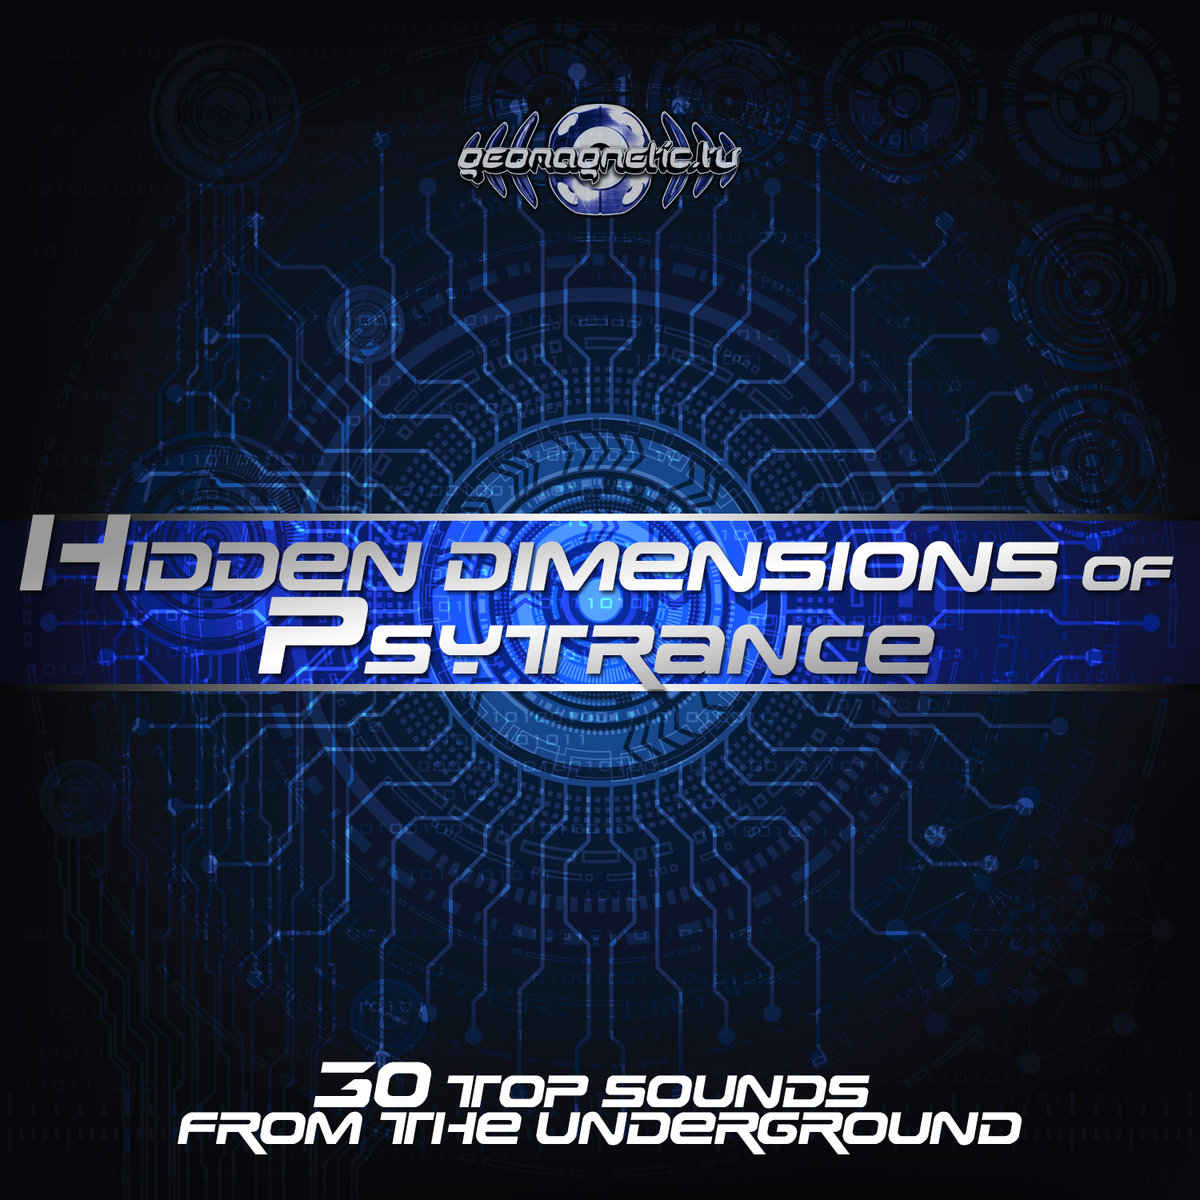 dj Kundalini - Fractal Flowers @ 'Various Artists - Hidden Dimensions of Psytrance (30 Top Sounds From The Underground)' album (electronic, goa)